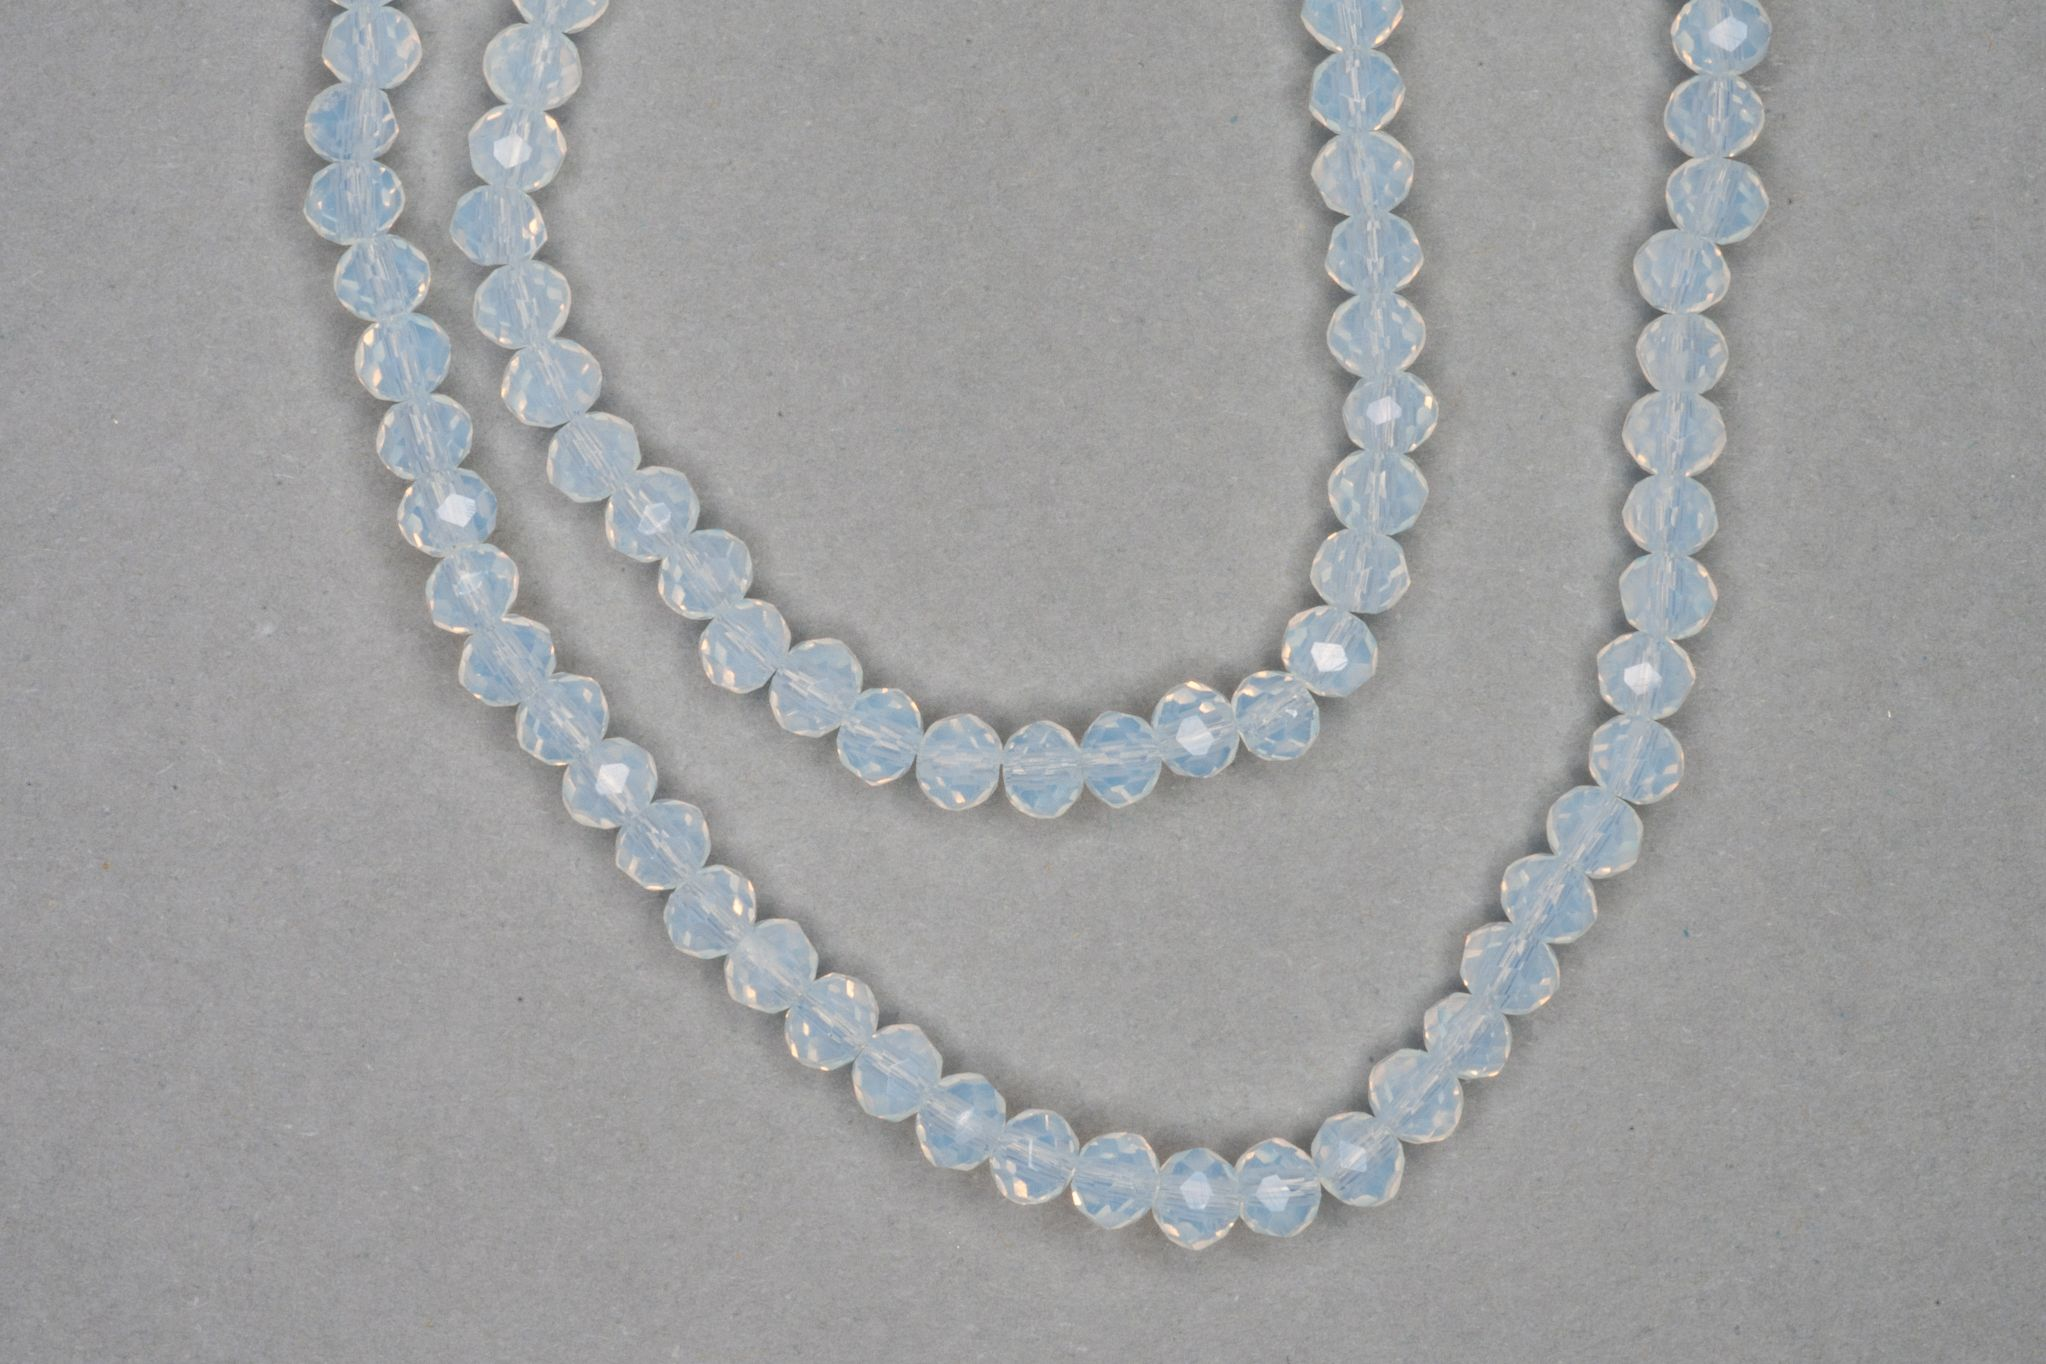 Milky White Faceted Glass Beads